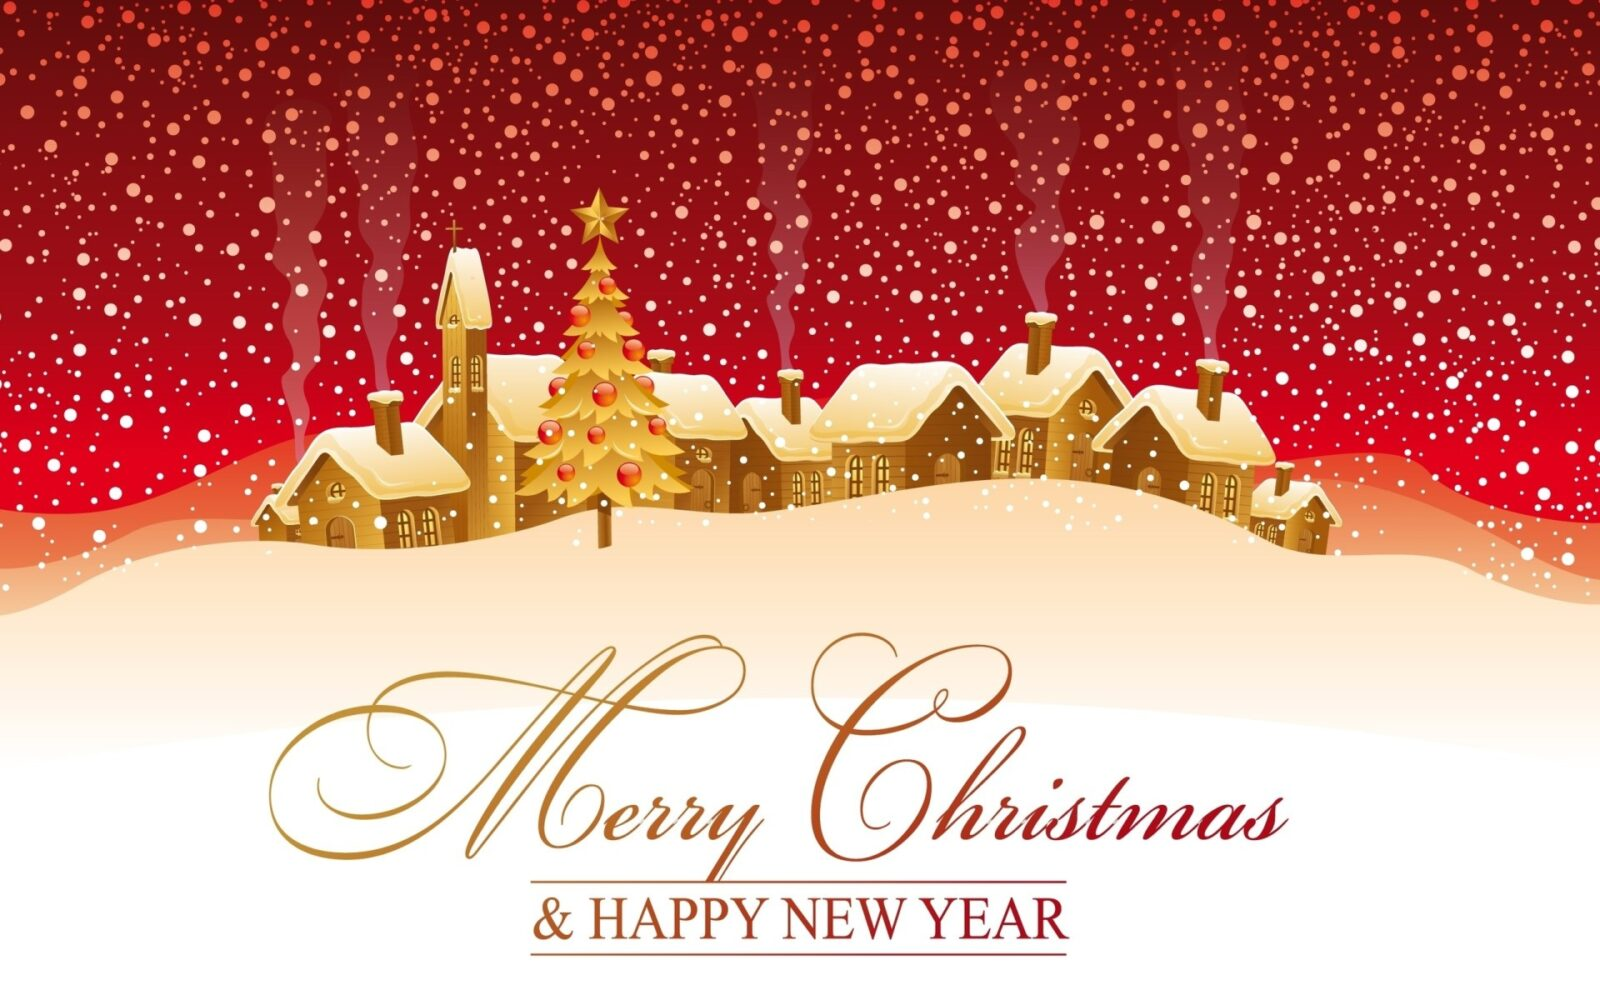 Merry Christmas And Happy New Year.Merry Christmas And Happy New Year To All People In The